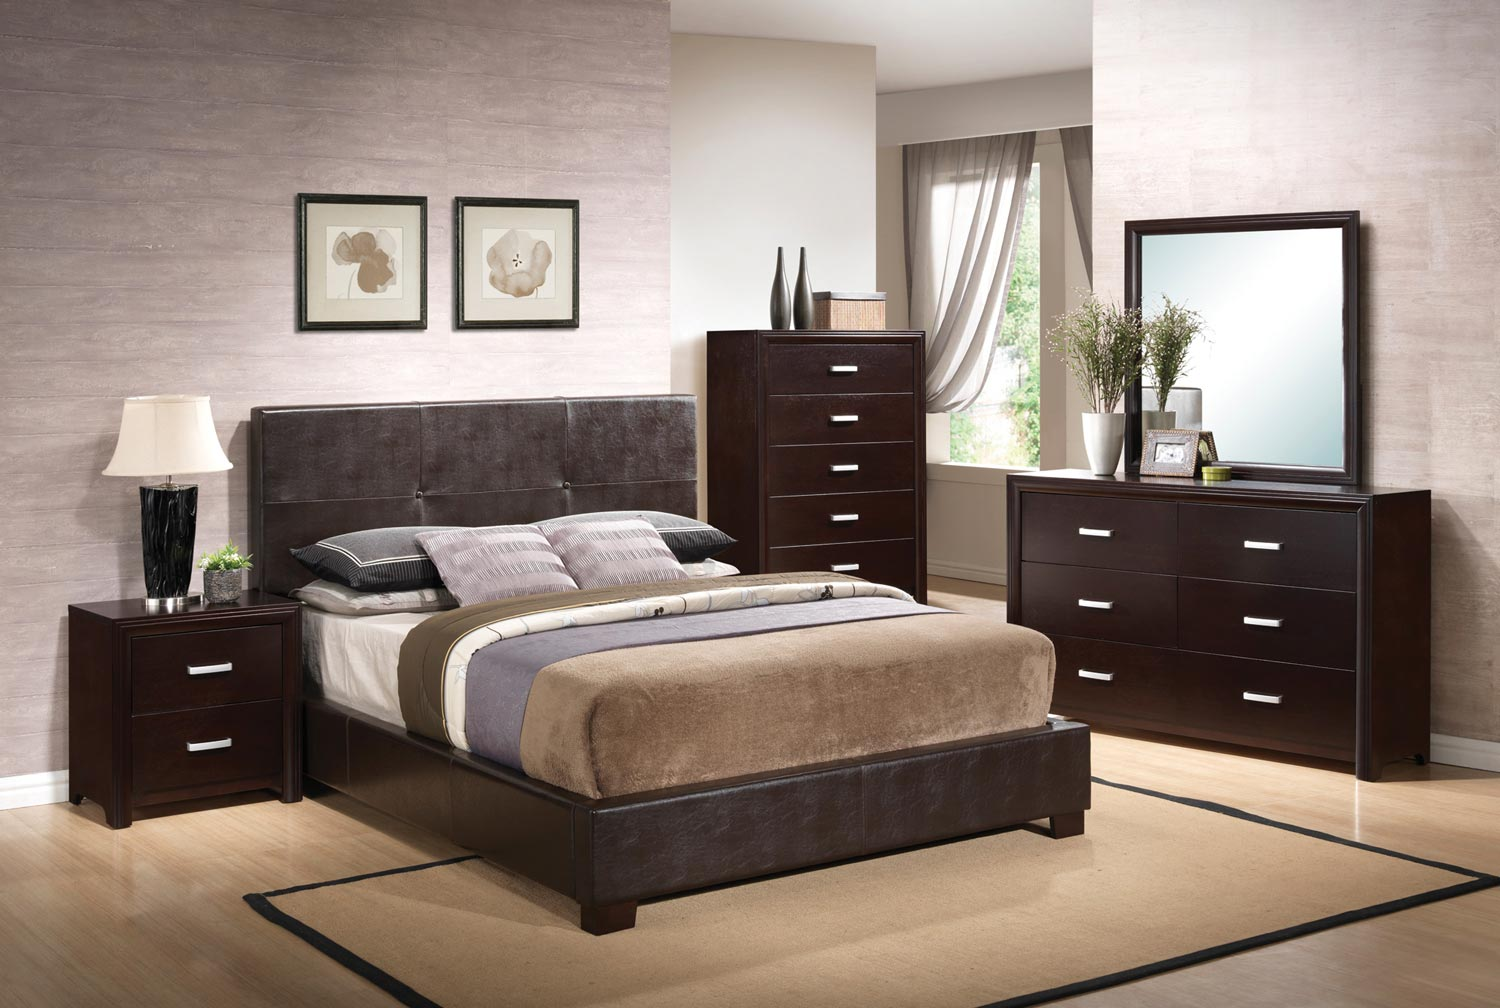 Coaster Andreas Vinyl Upholstered Low Profile Bedroom Set - Cappuccino